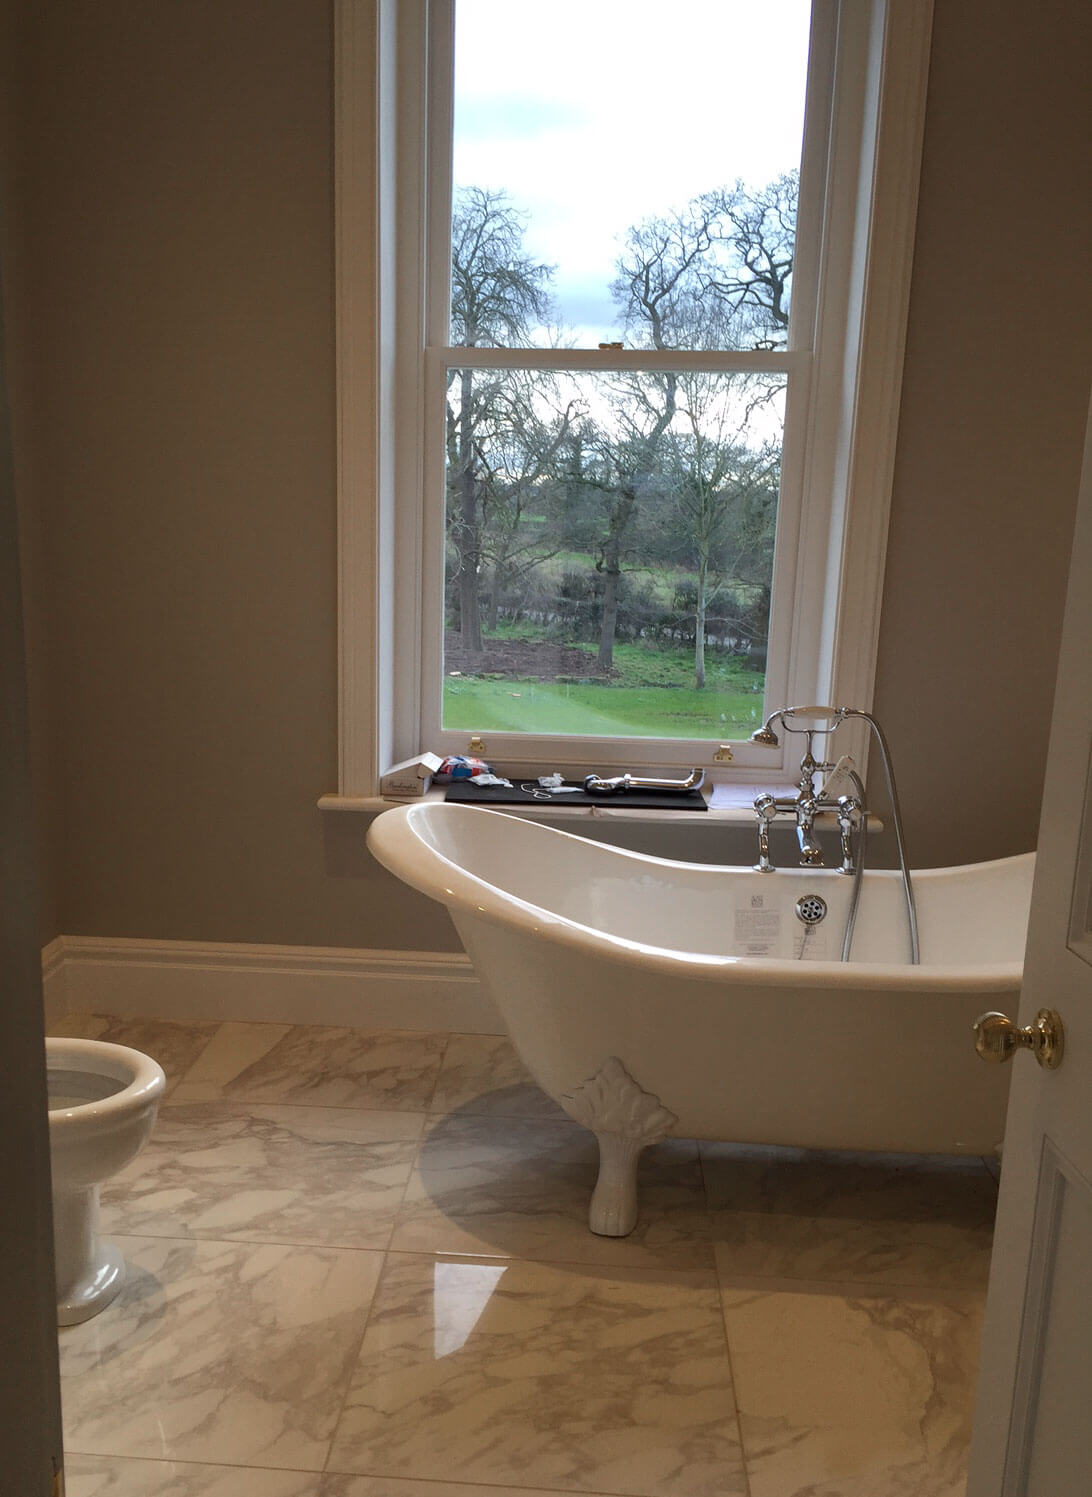 Bathroom Tiles & Rool Top Bath Cheshire